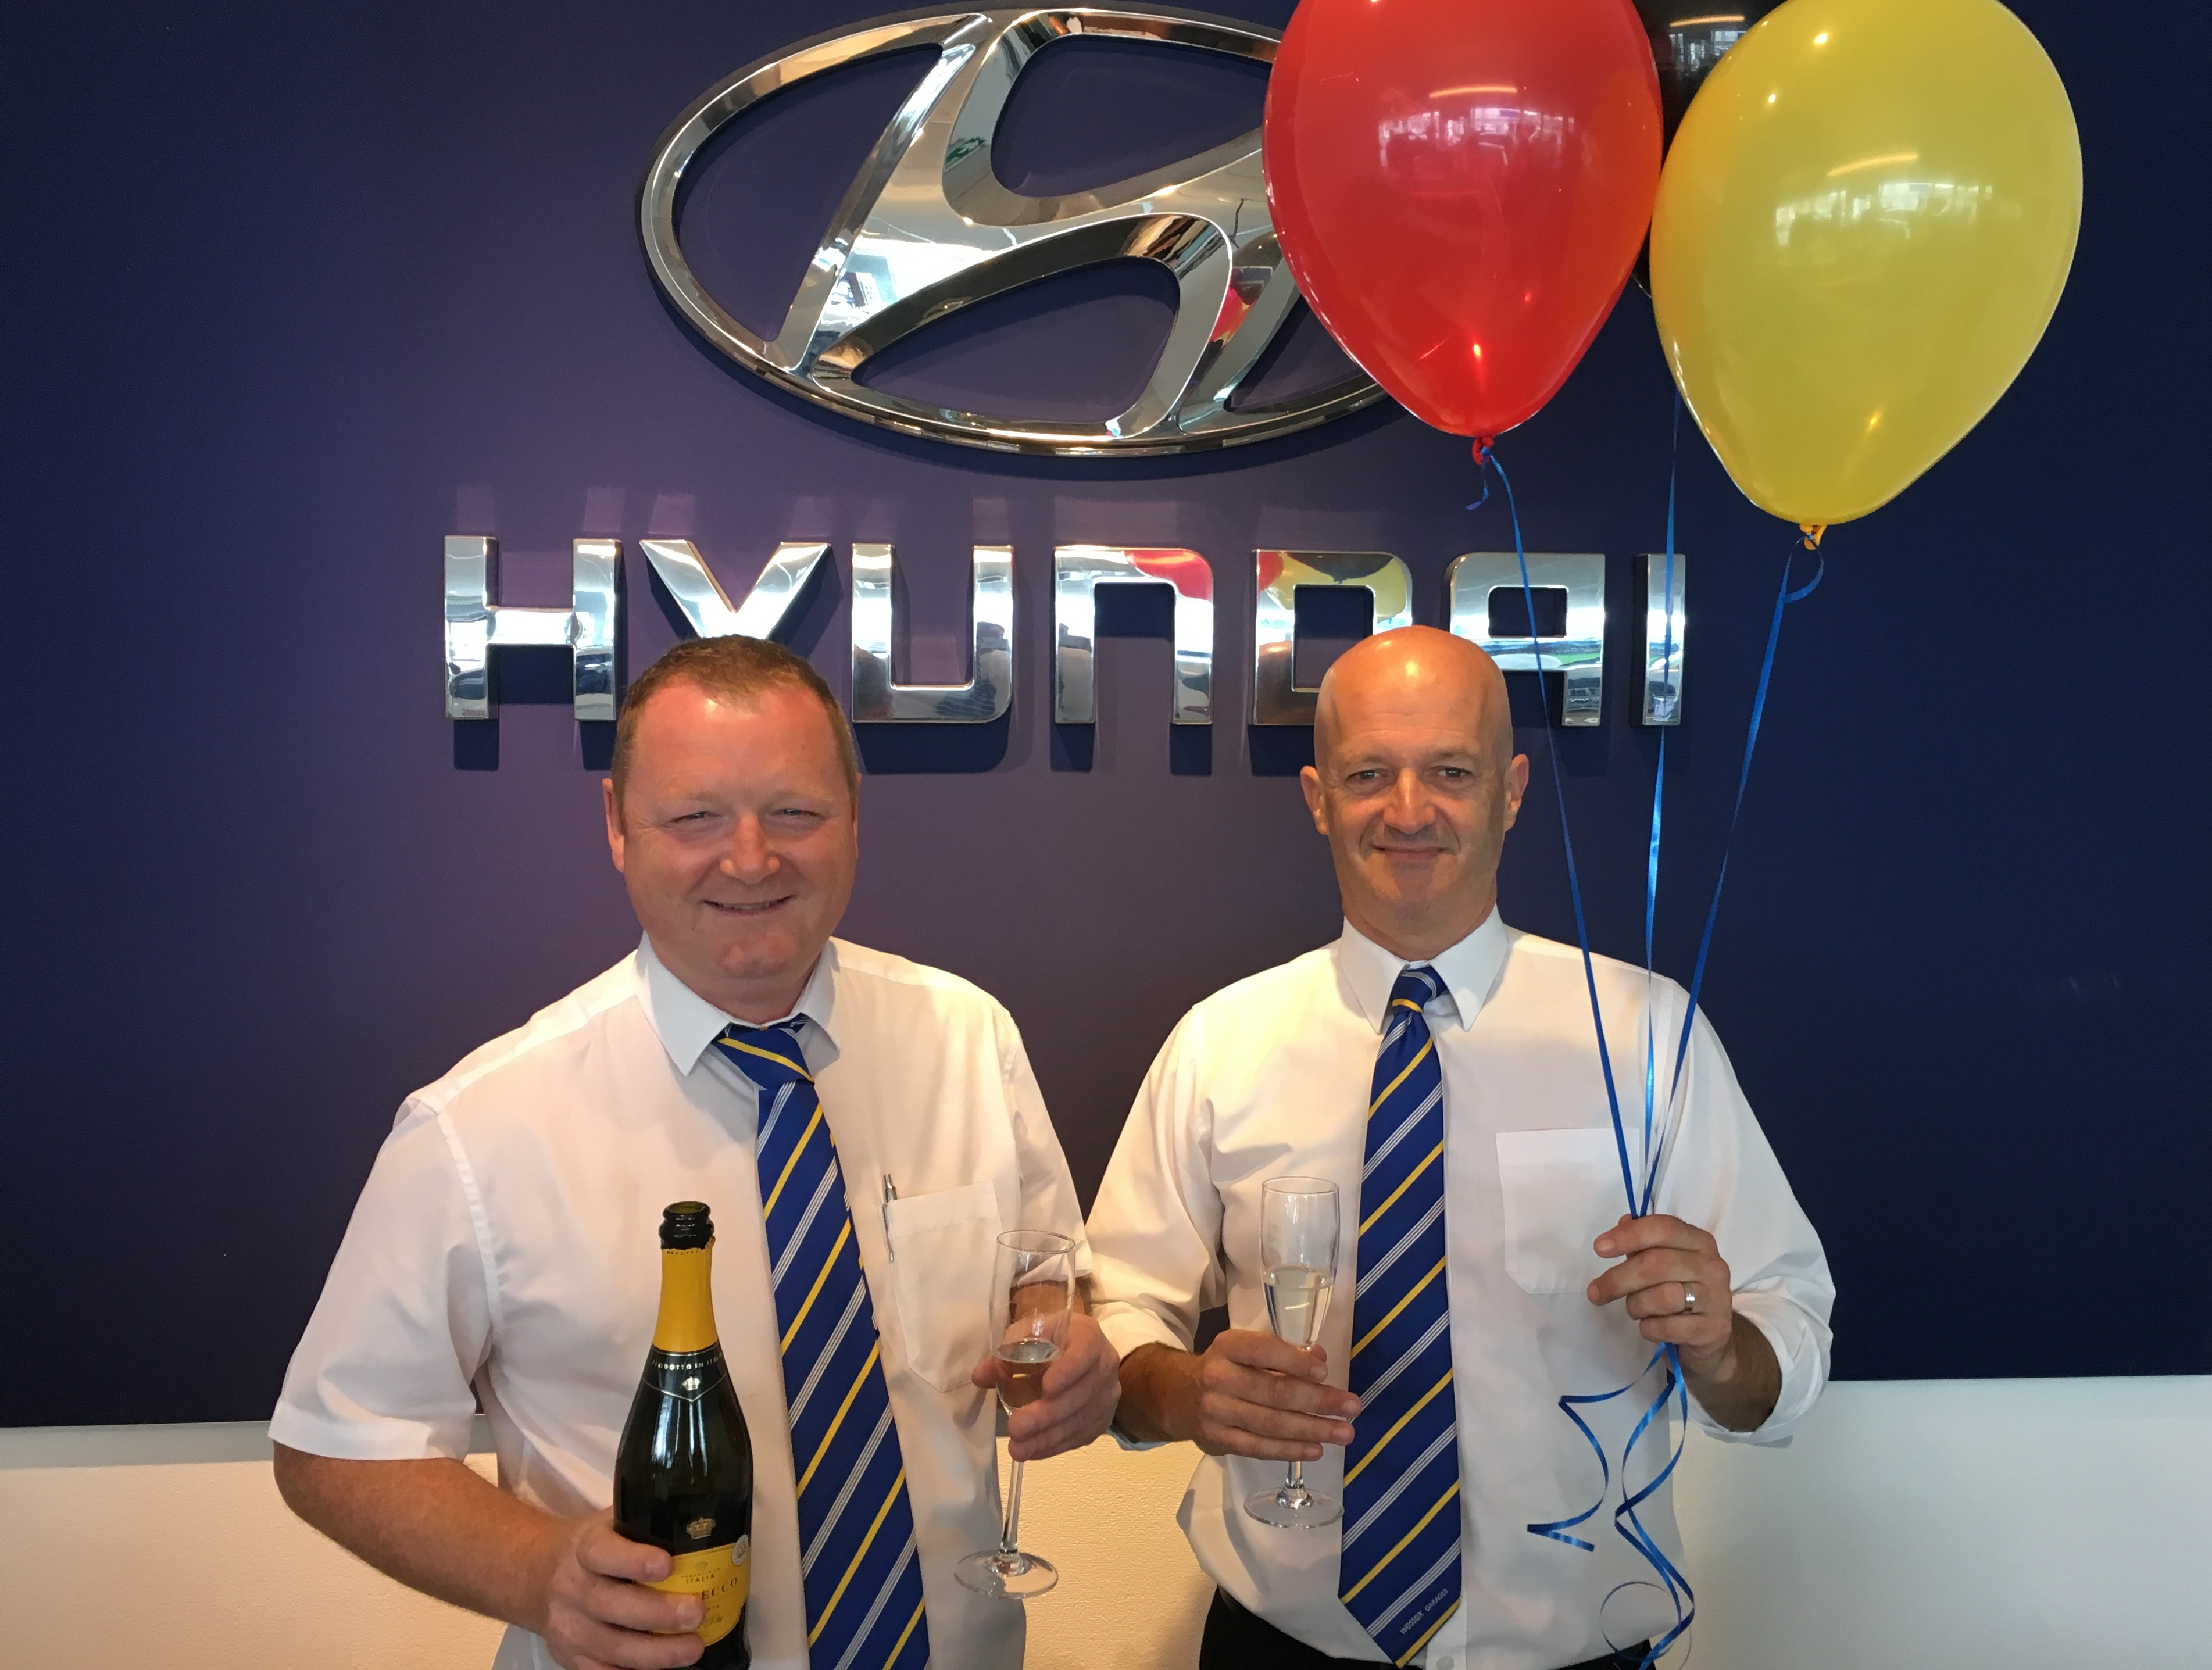 (From left to right) Wessex Garages' Hyundai Brand Manager, Mark Goodwin, and Sales Executive, Jake Ruckley, get ready for the Hyundai fifth birthday celebrations.